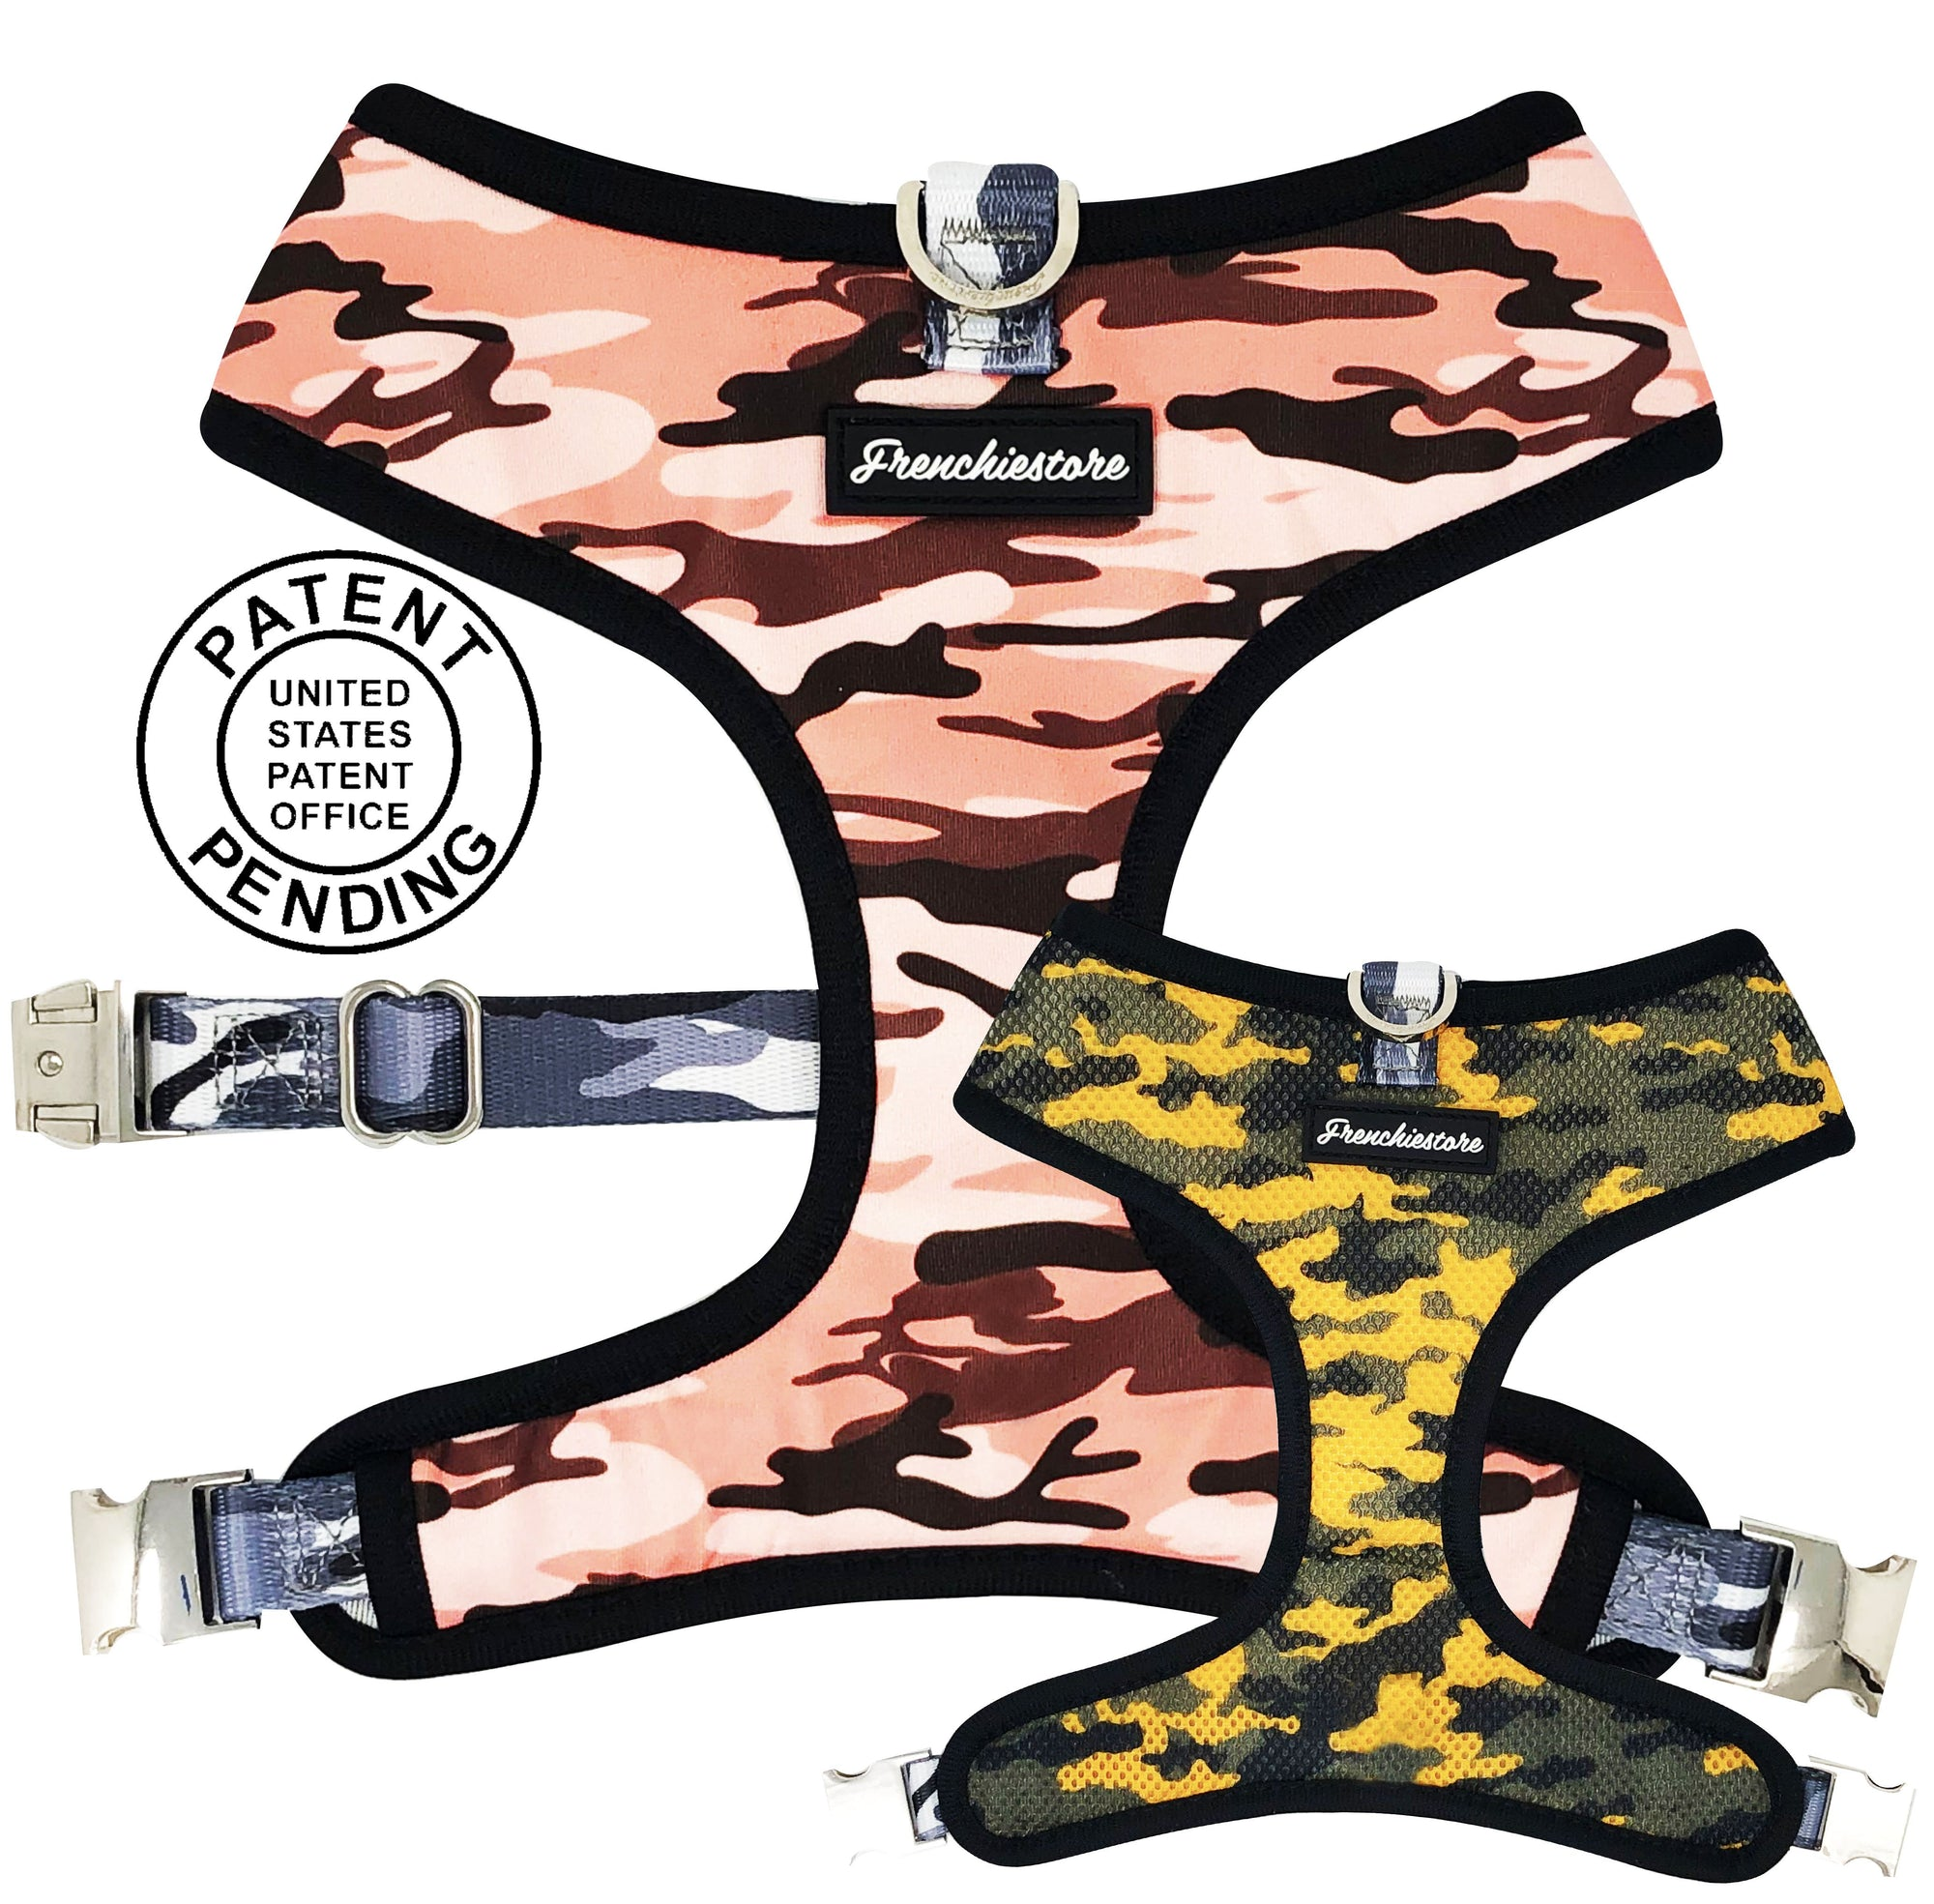 Frenchiestore Reversible Dog Health Harness | Ultimate Camo, Frenchie Dog, French Bulldog pet products